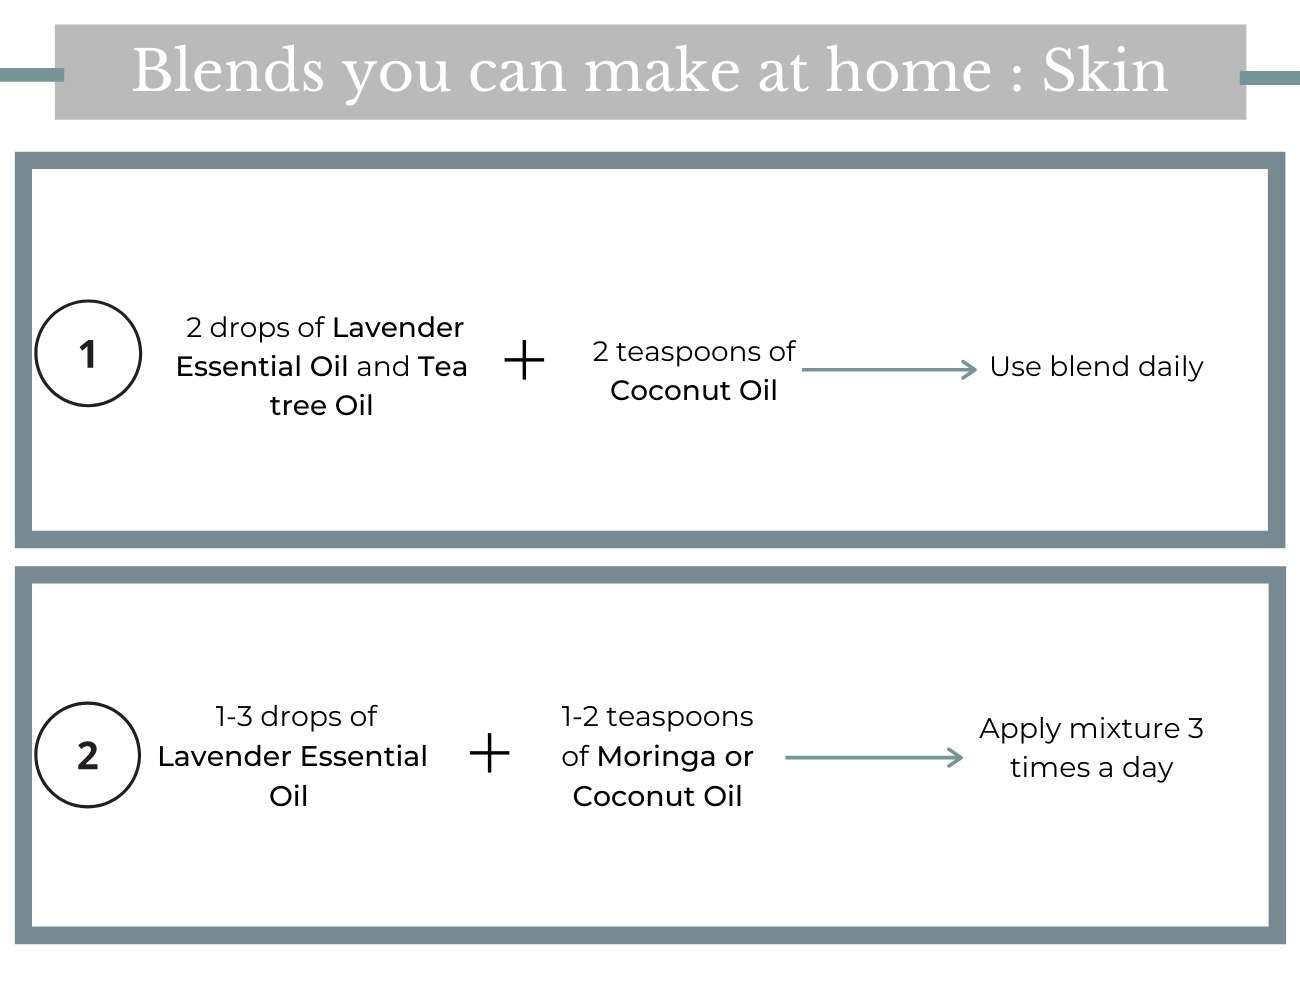 This is an image showing how to Blend Essential Oils for Skin.